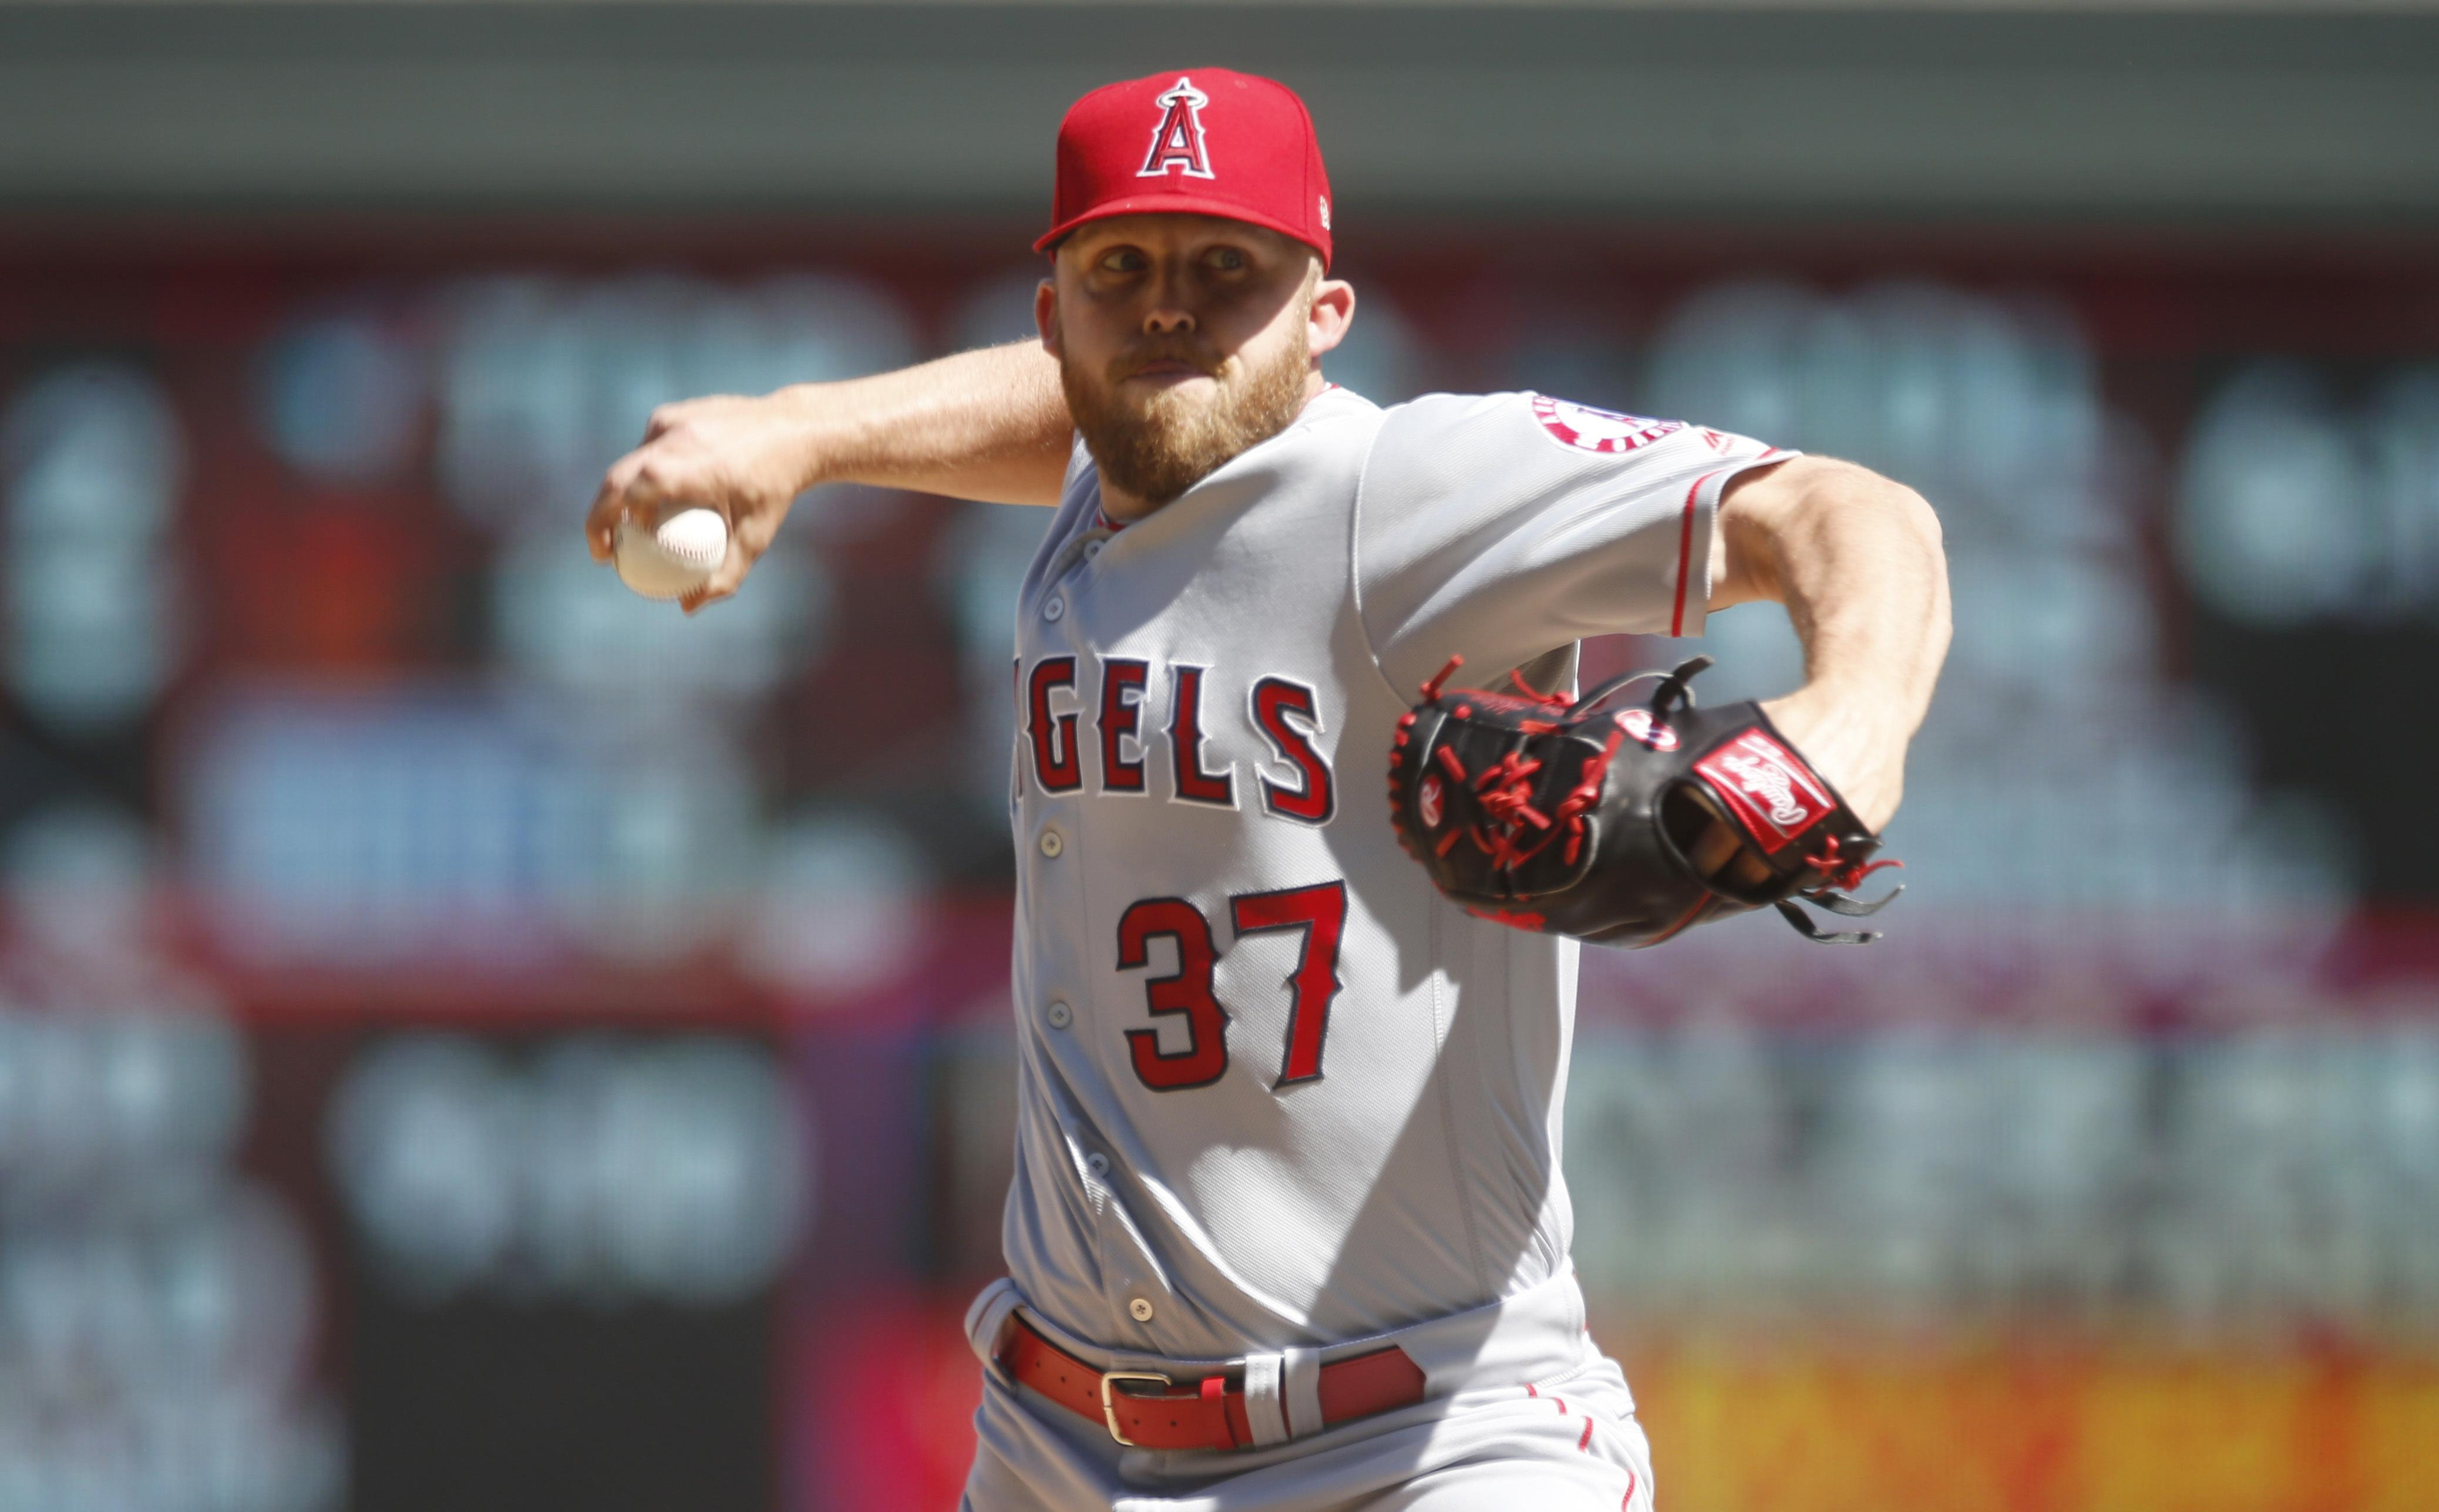 Angels designate relief pitcher Cody Allen for assignment